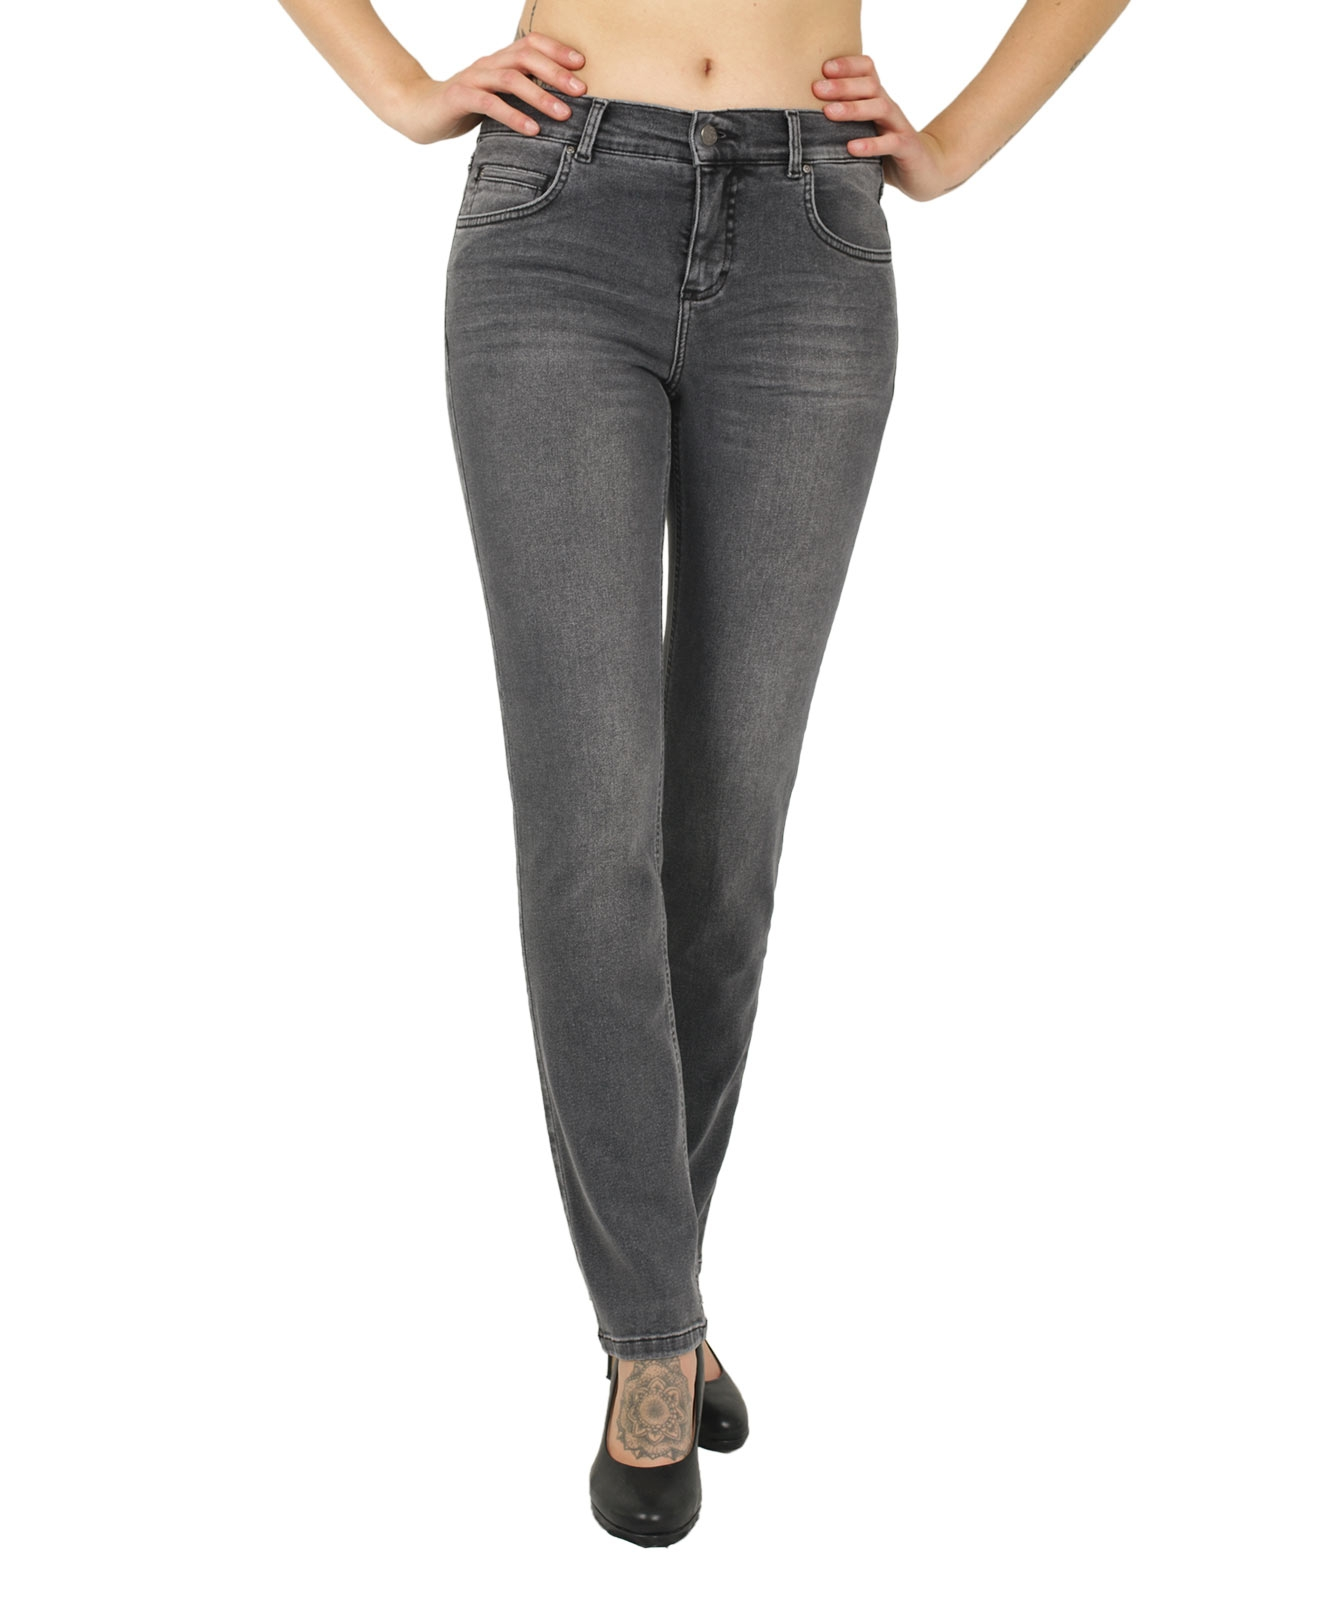 Hosen - Angels Straight Leg Jeans Cici in Grey Used Crinkle  - Onlineshop Jeans Meile